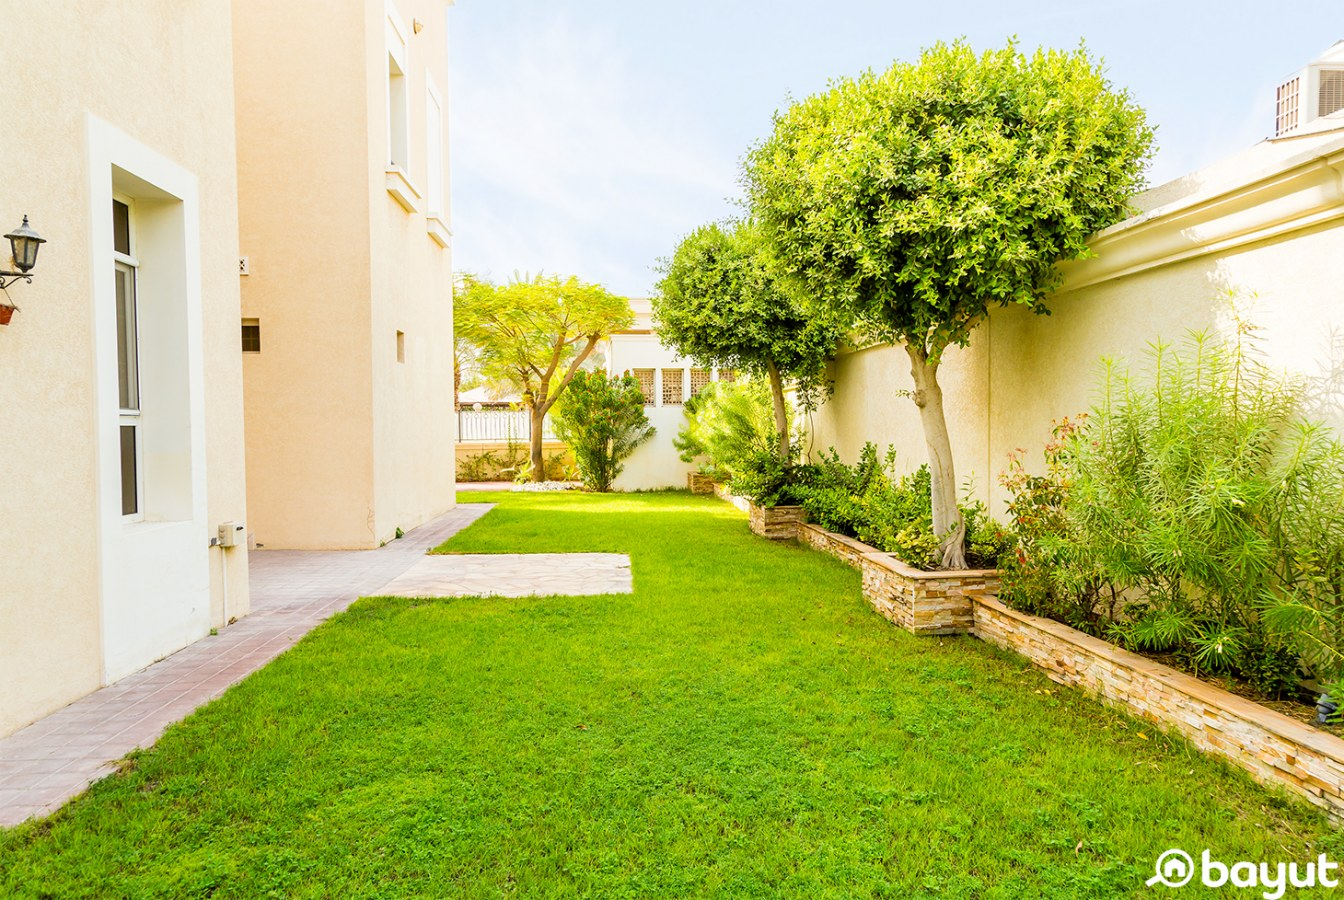 House of the Week with Bayut: 6-Bedroom Villa in Emirates Hills, Garden Area